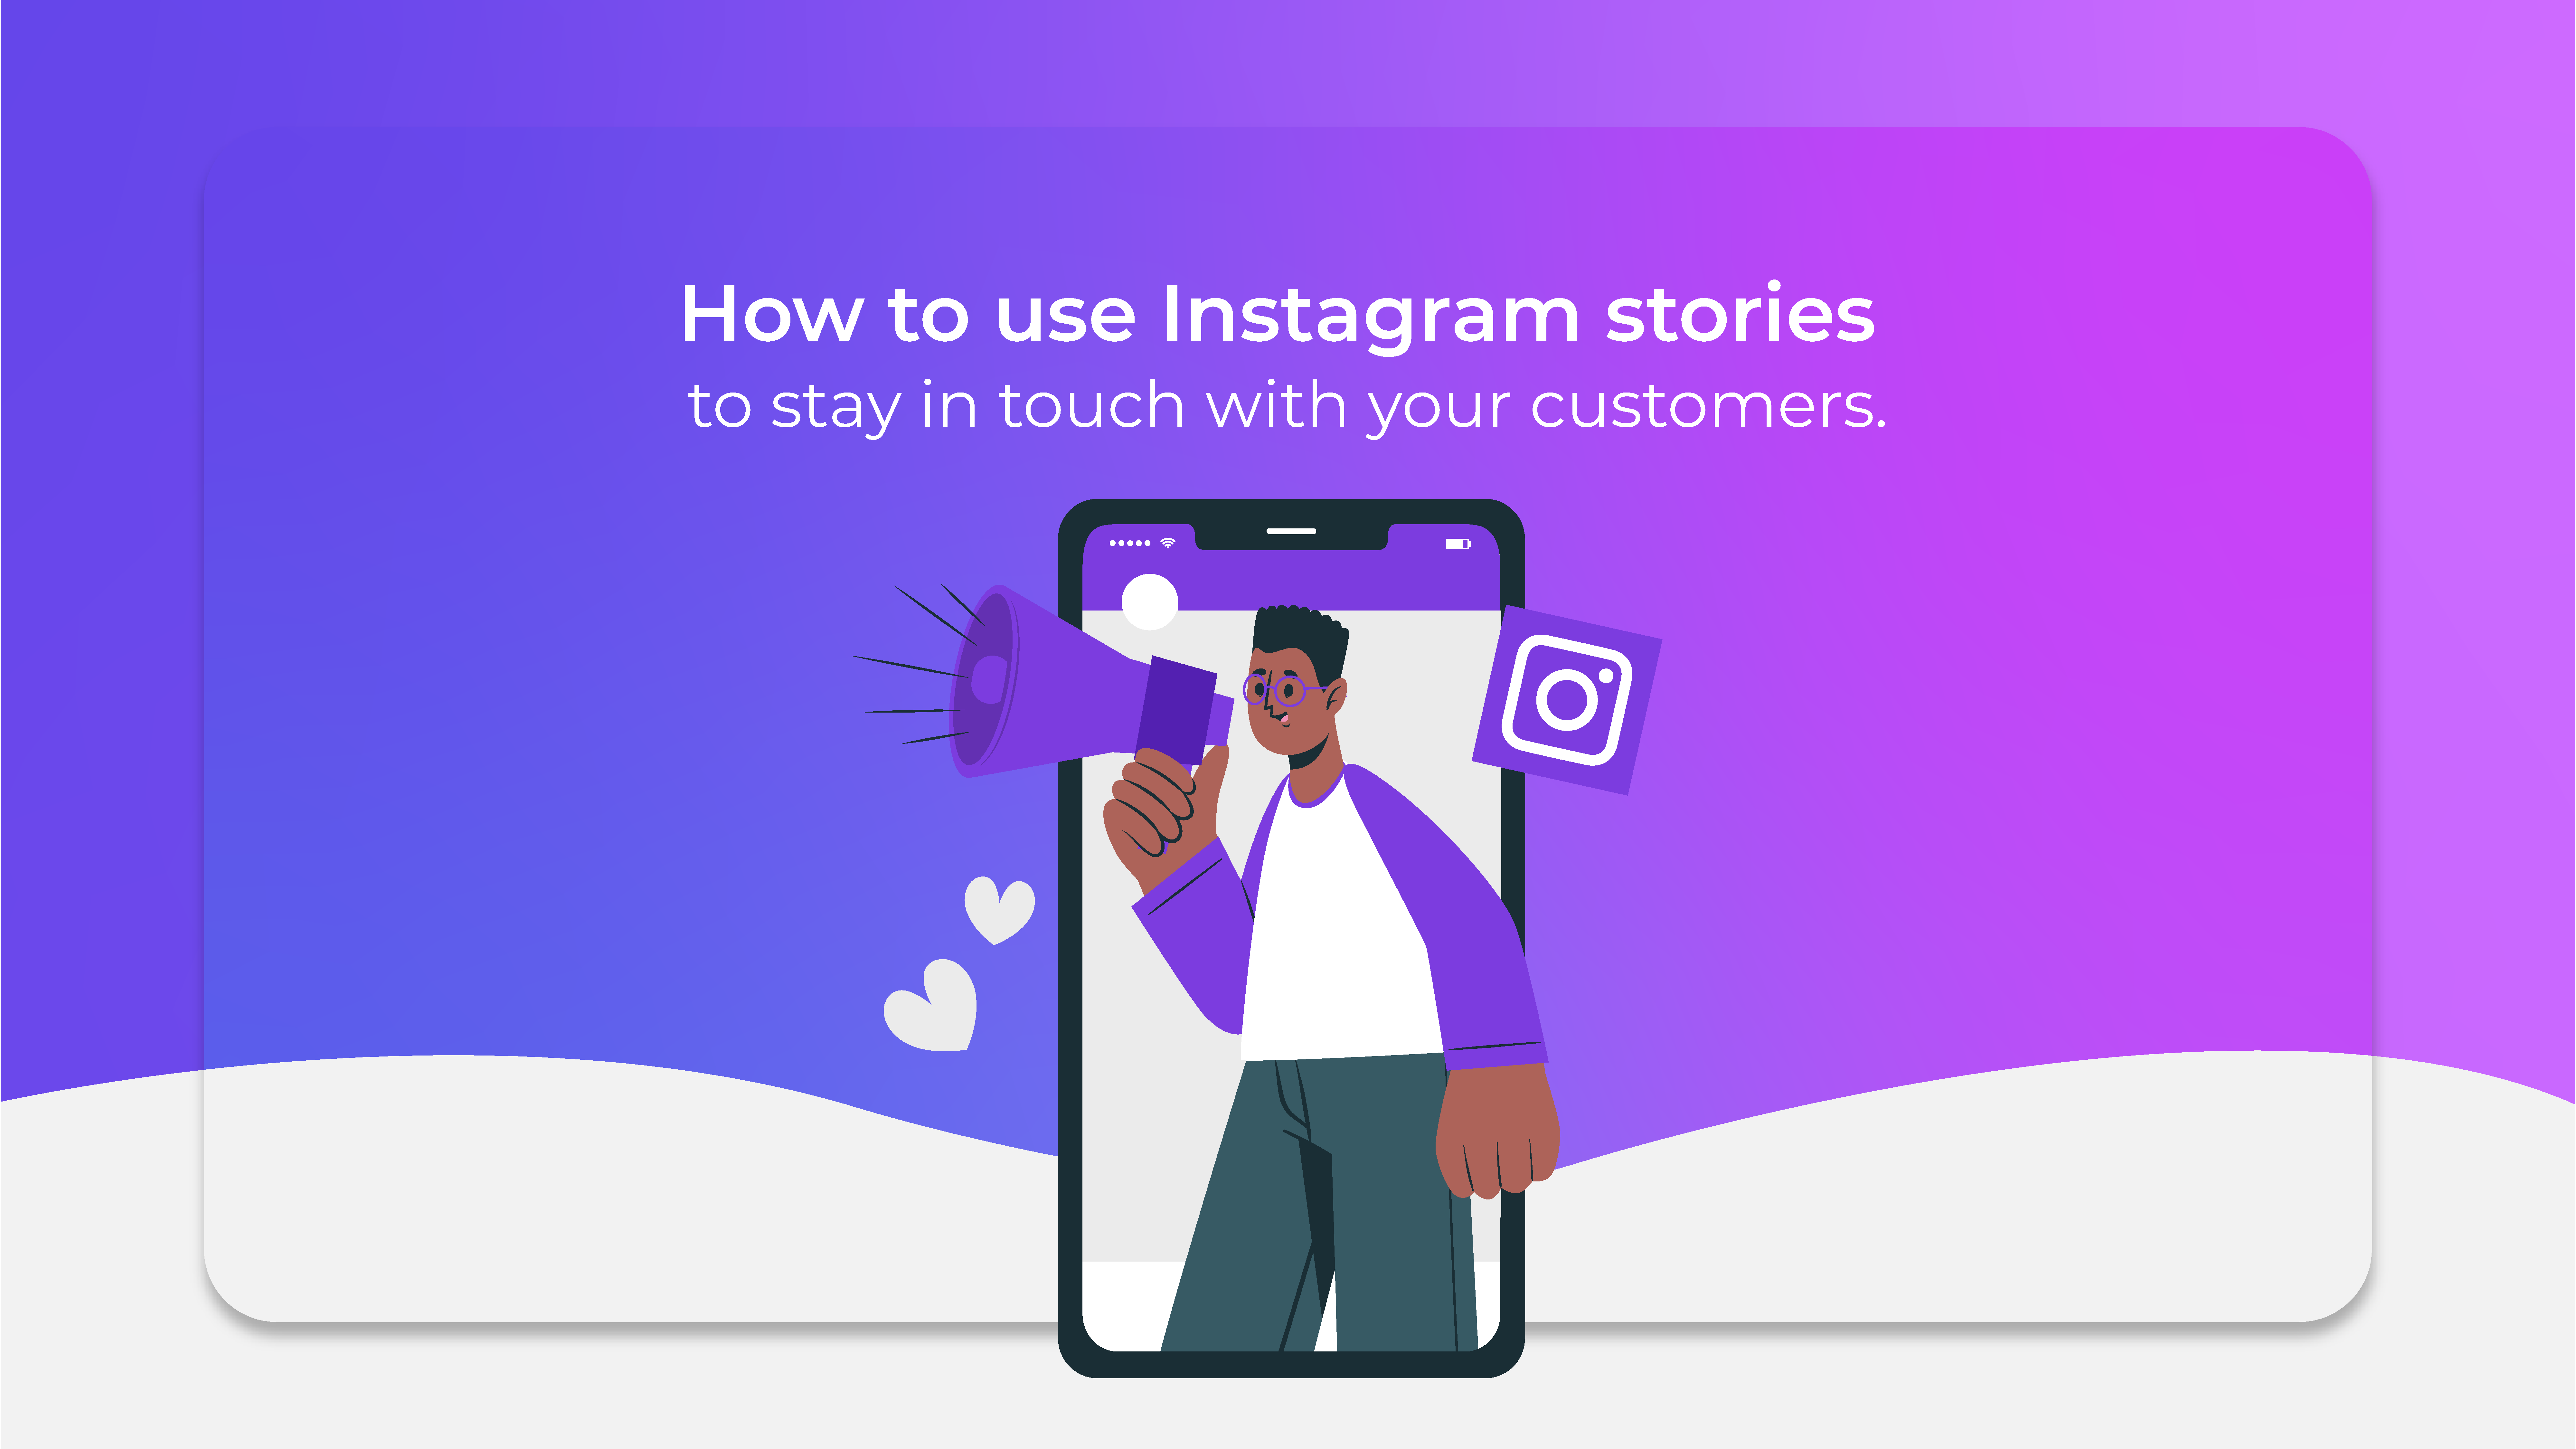 How to use Instagram stories to stay in touch with your customers.